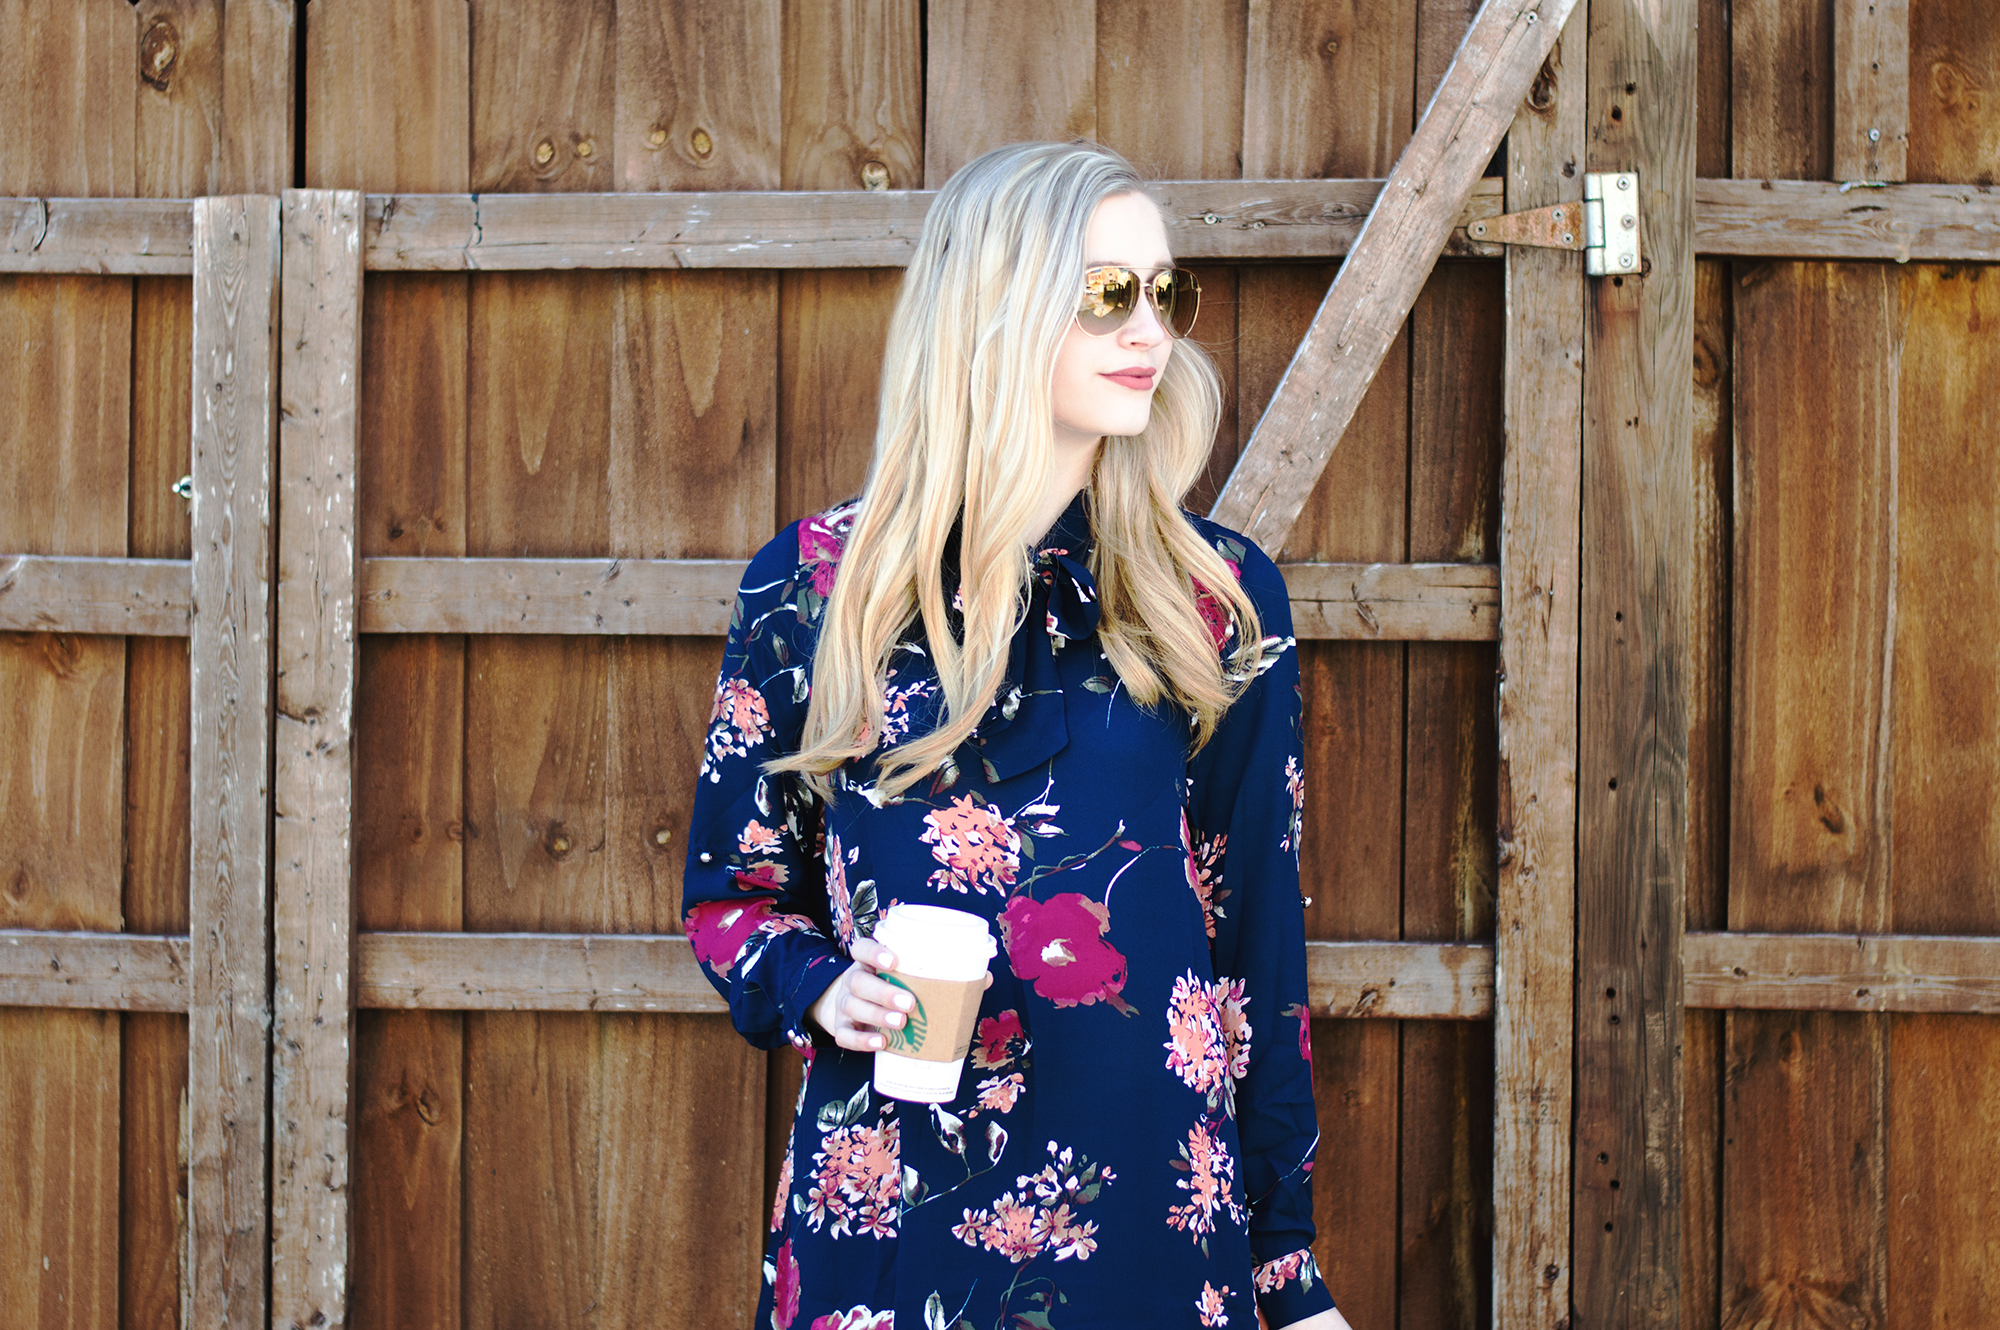 styelled-blog-elle-elisabeth-brick-city-closet-floral-tunic-bow-burberry-sunglasses-hudson-jeans-tory-burch-starbucks-ltkit-fblogger-style-fashion-blogger-valentine's-date-06